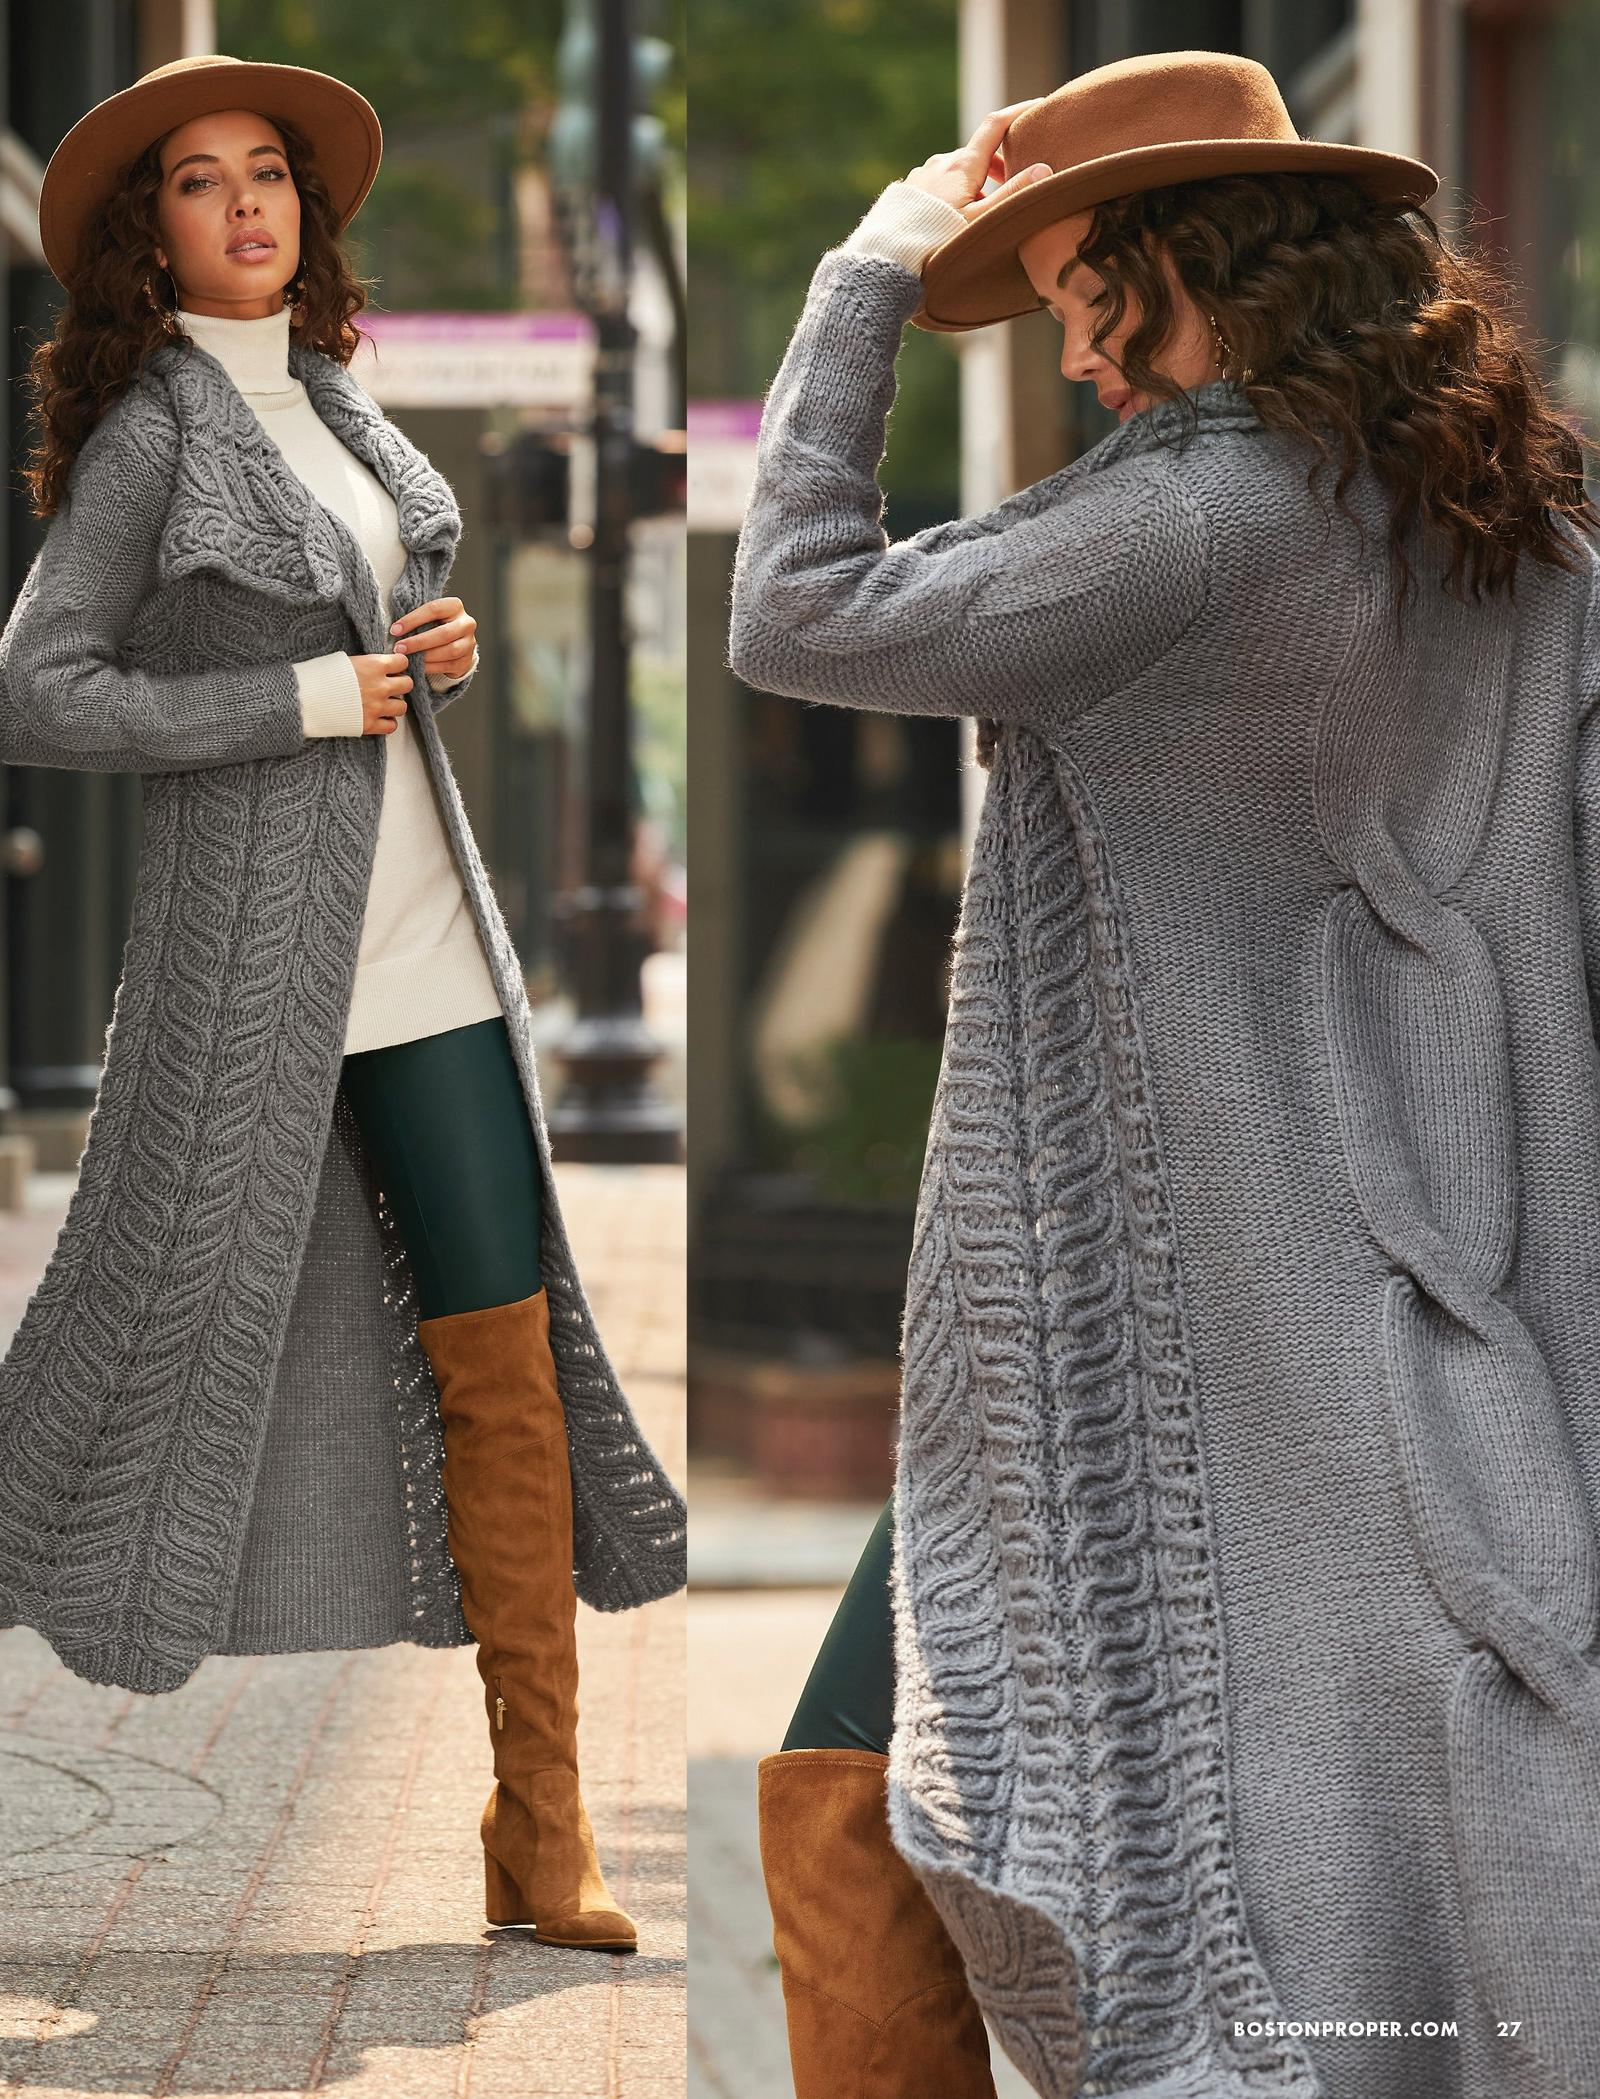 model wearing a gray cable-detail long duster sweater, off-white turtleneck sweater, dark green faux-leather leggings, brown felt hat, and light brown over-the-knee suede boots.